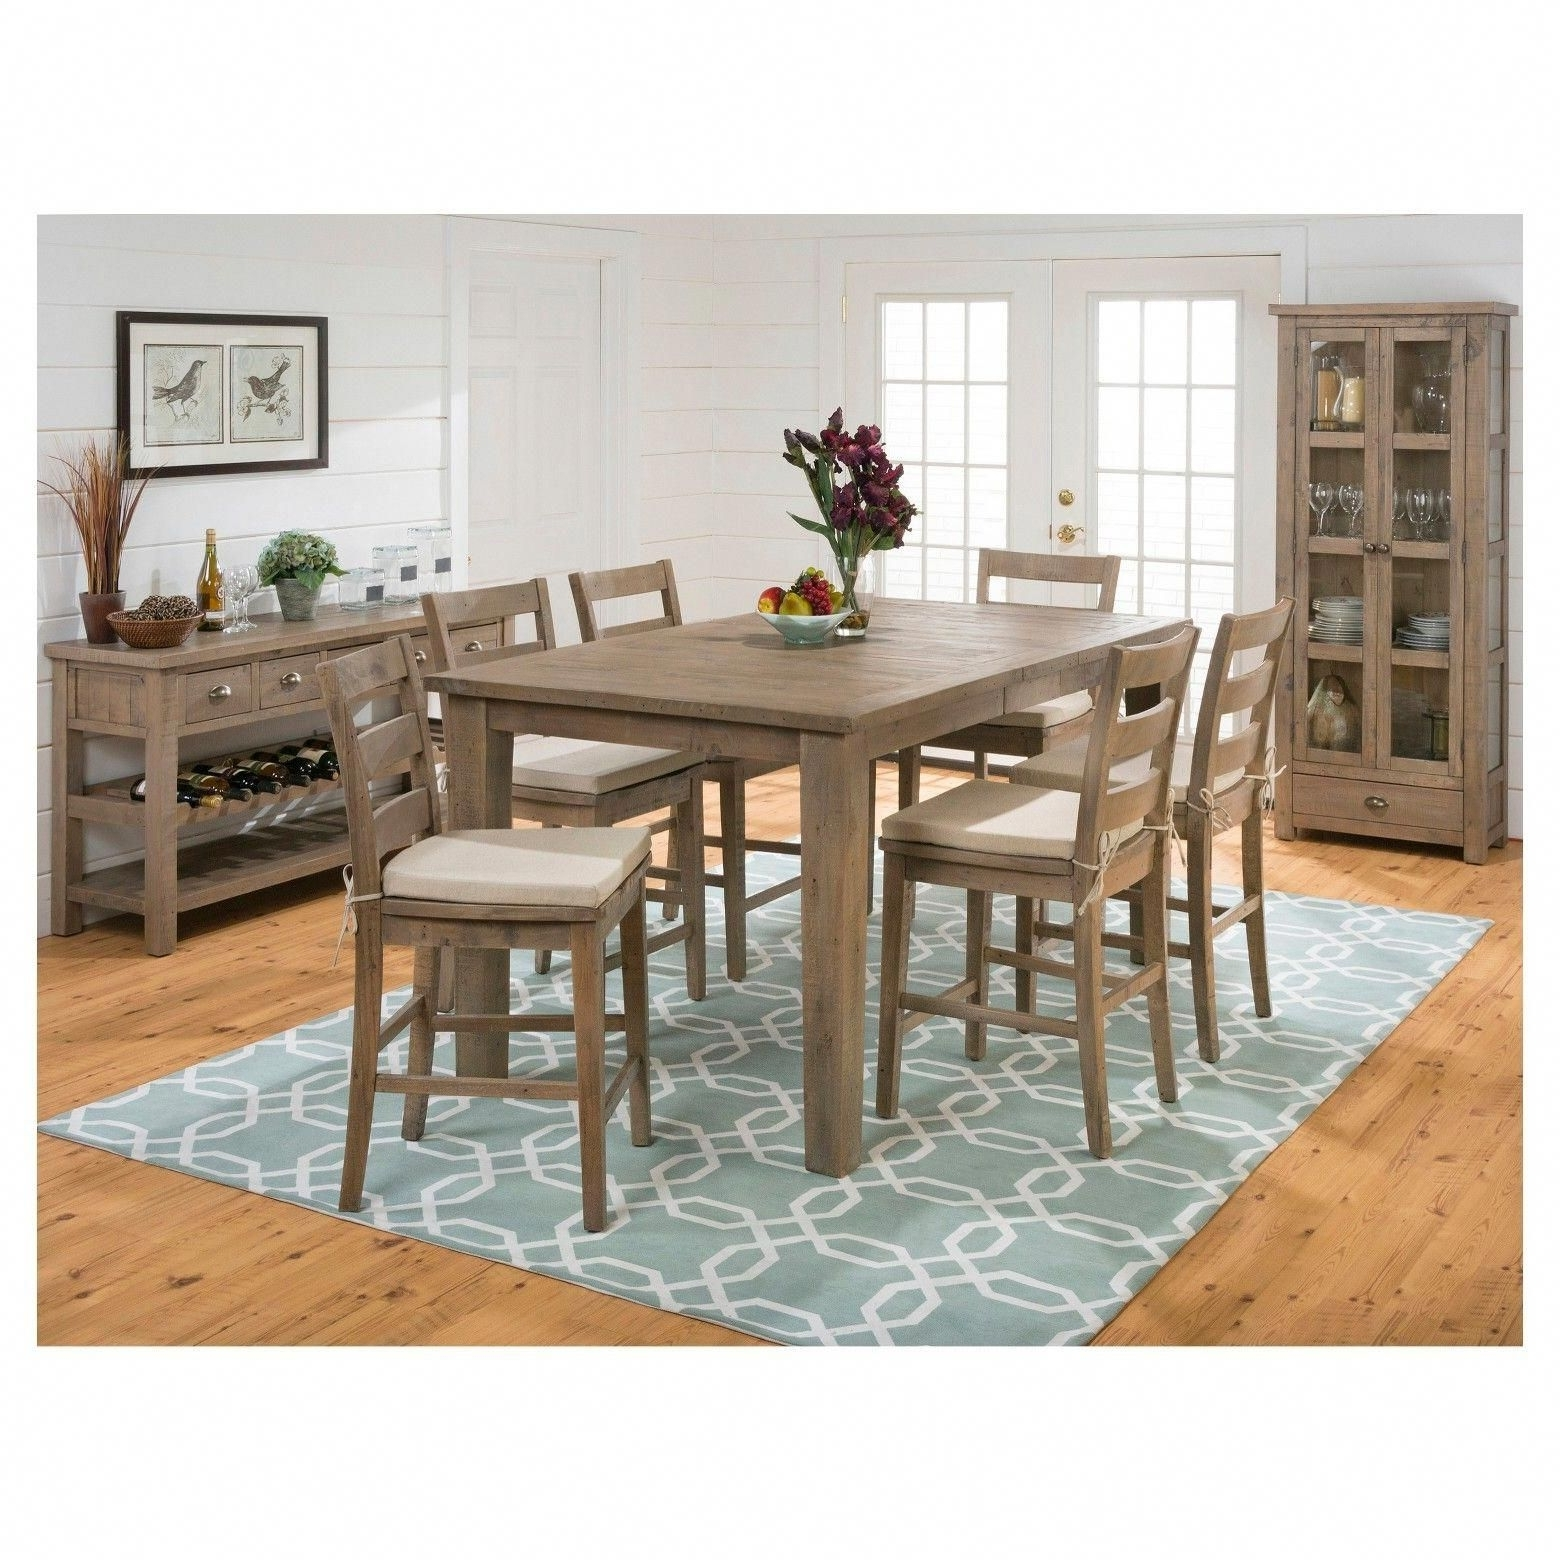 Most Recent Combining Casual Cottage Design With On Trend Distressing, Jofran's For Craftsman 9 Piece Extension Dining Sets With Uph Side Chairs (View 7 of 25)